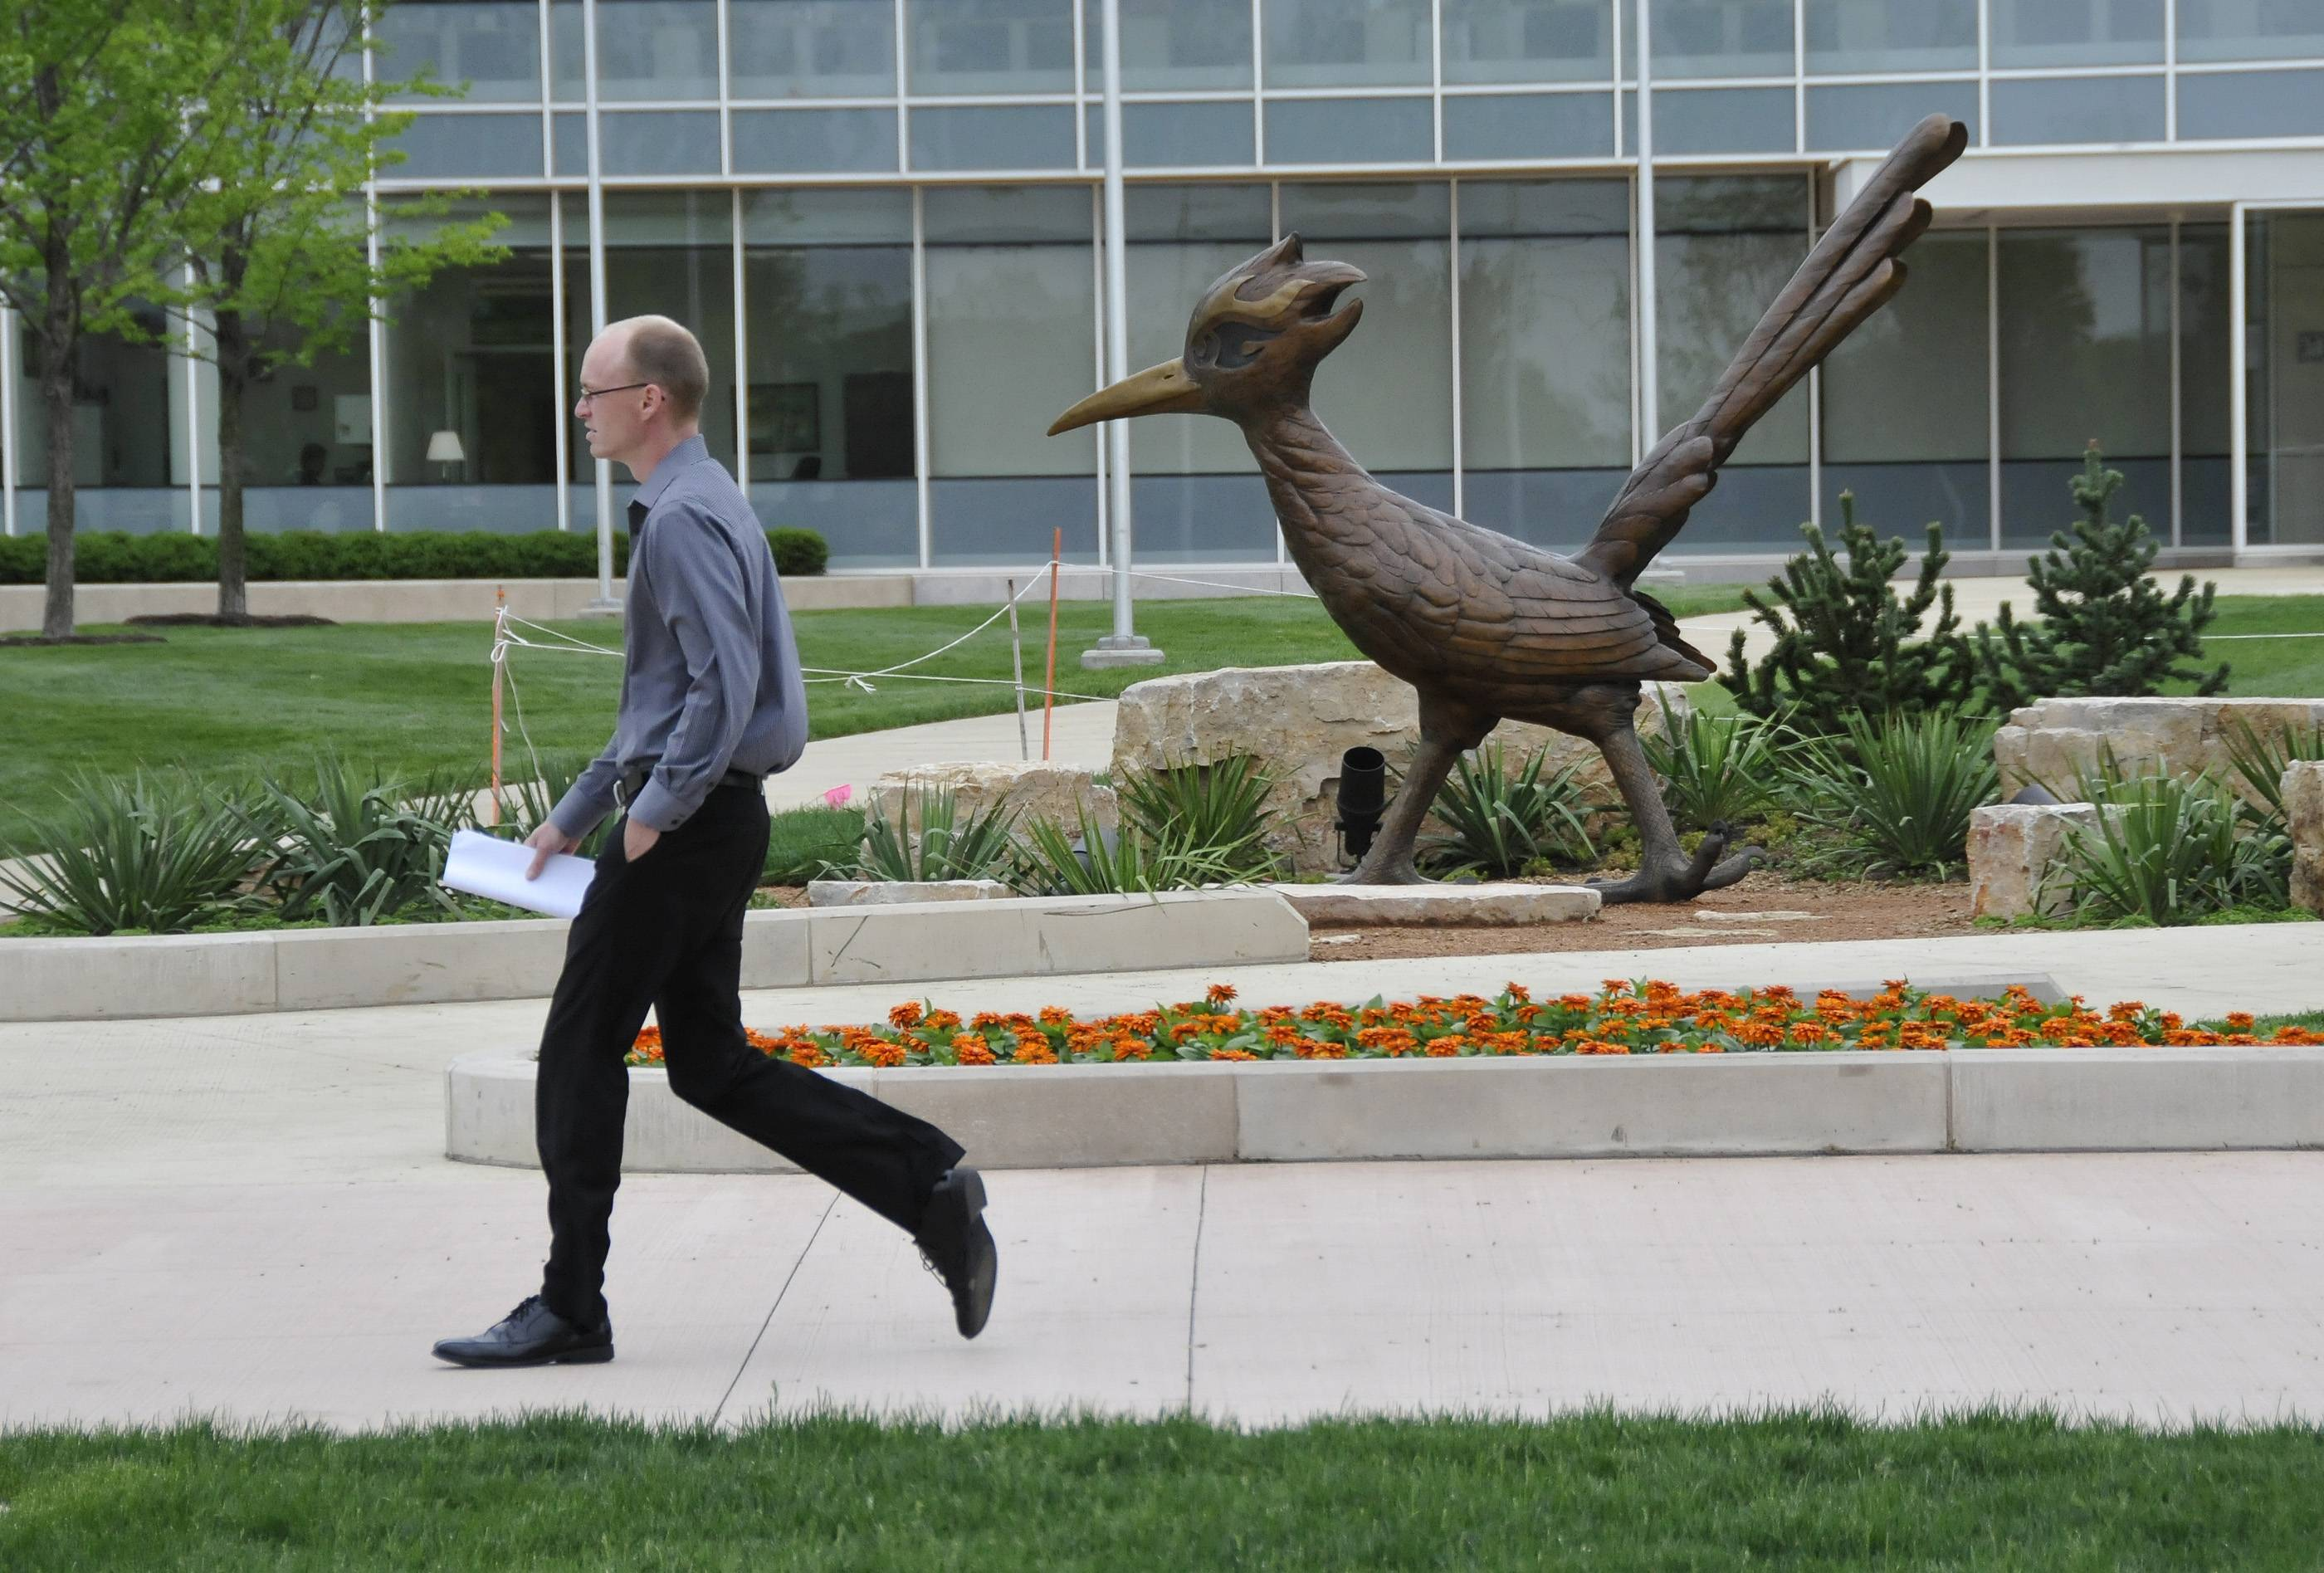 The College of DuPage has approved a $319.9 million budget for the fiscal year starting July 1 that calls for no increases in tuition or property taxes — despite a multimillion-dollar deficit.